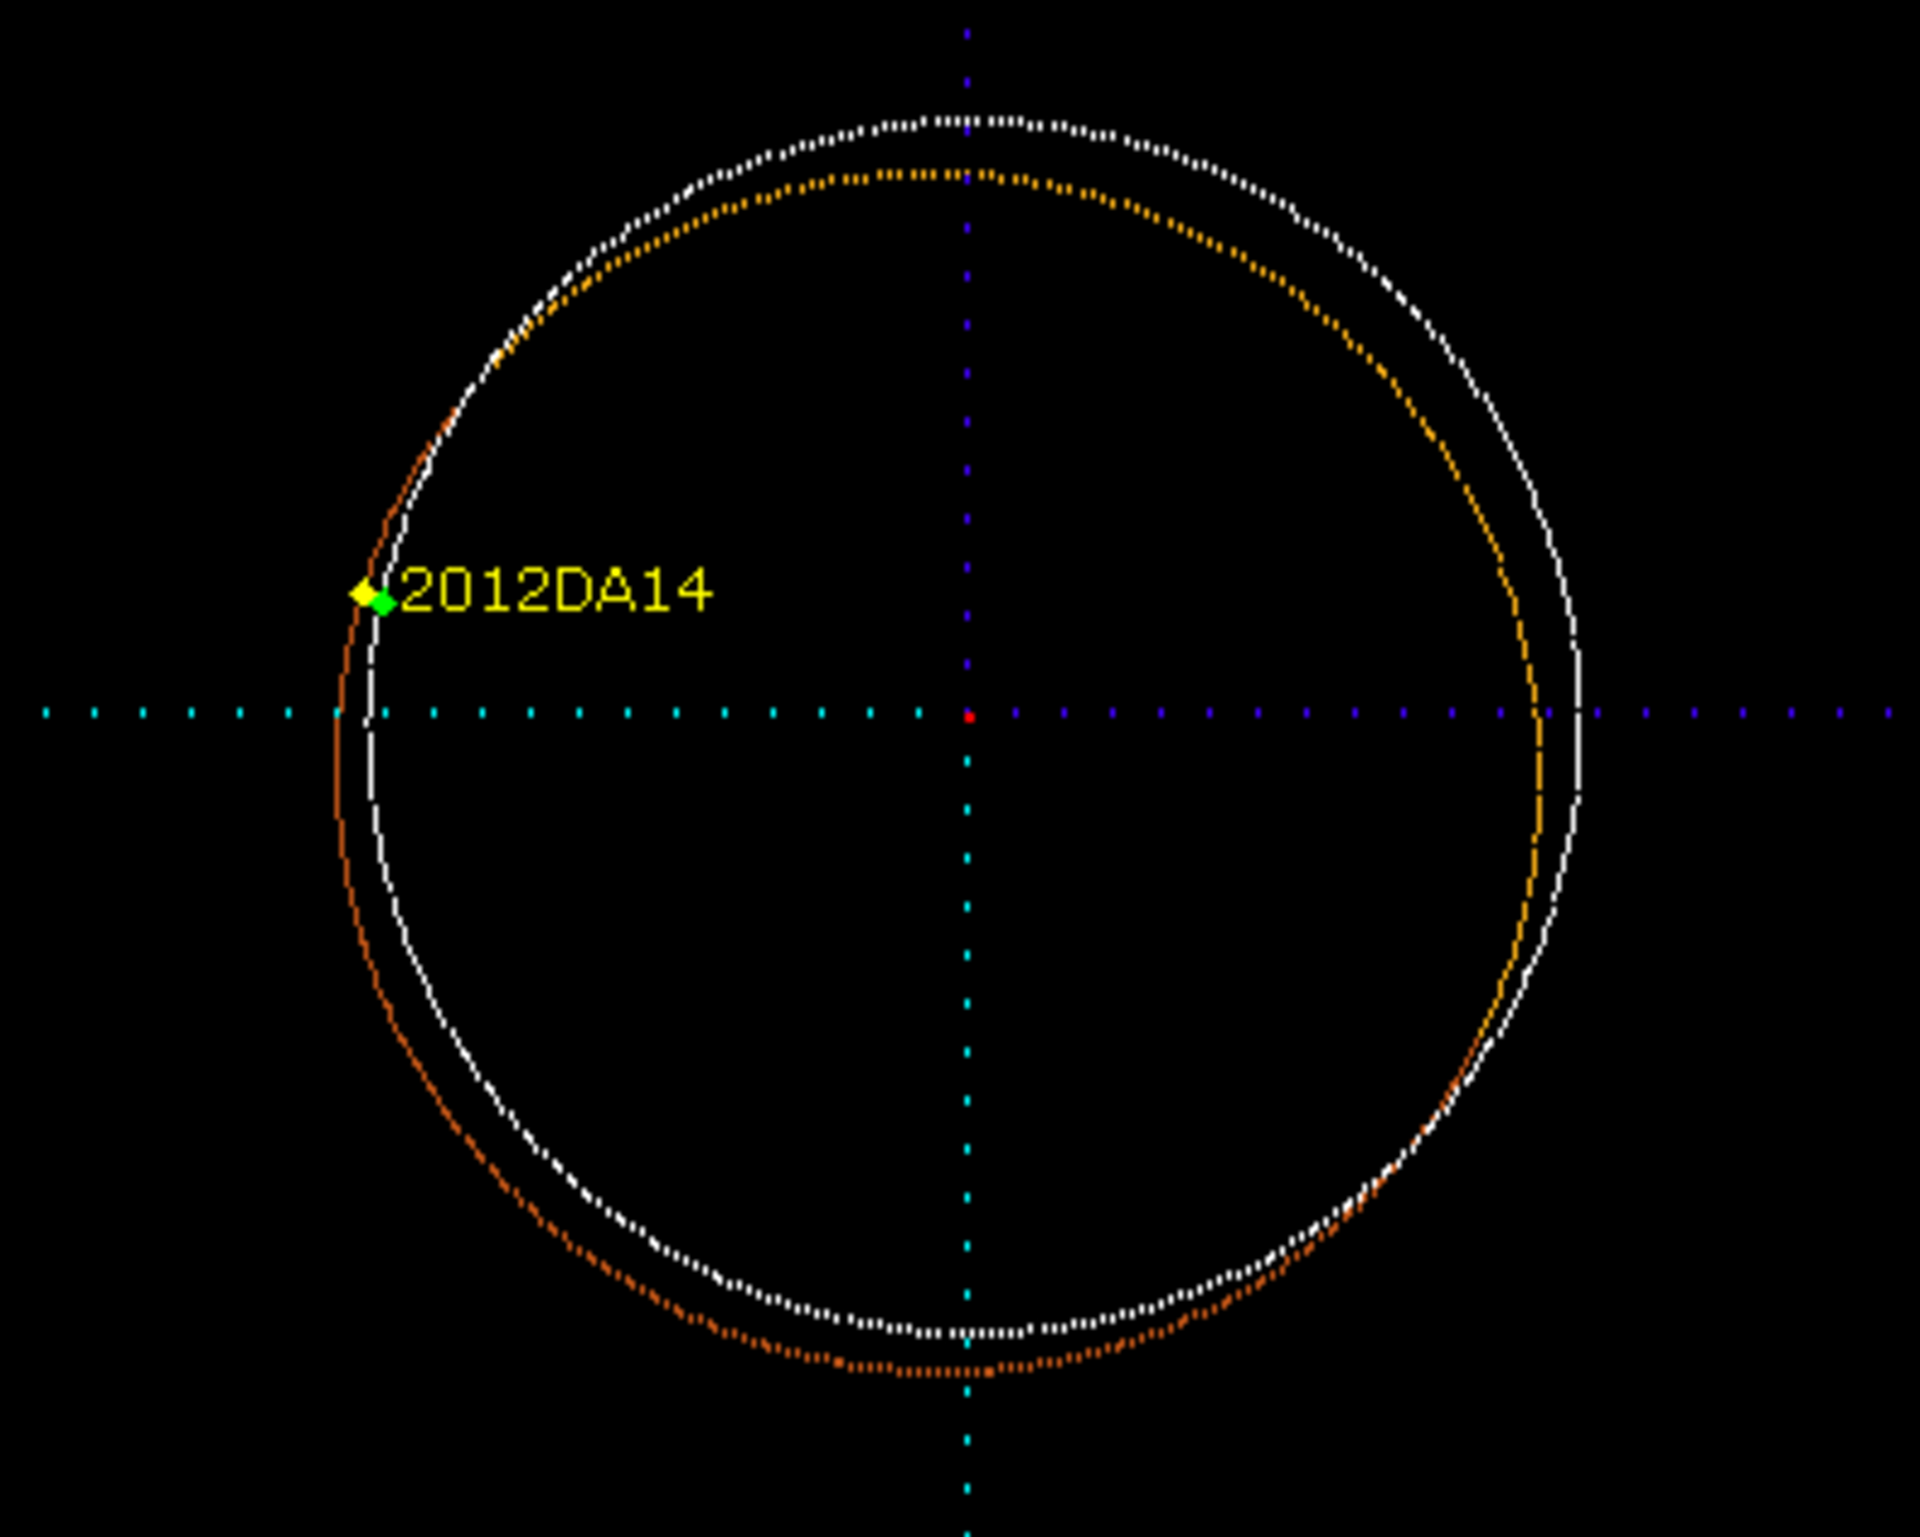 Asteroid and Earth orbits intersect (click for large view)